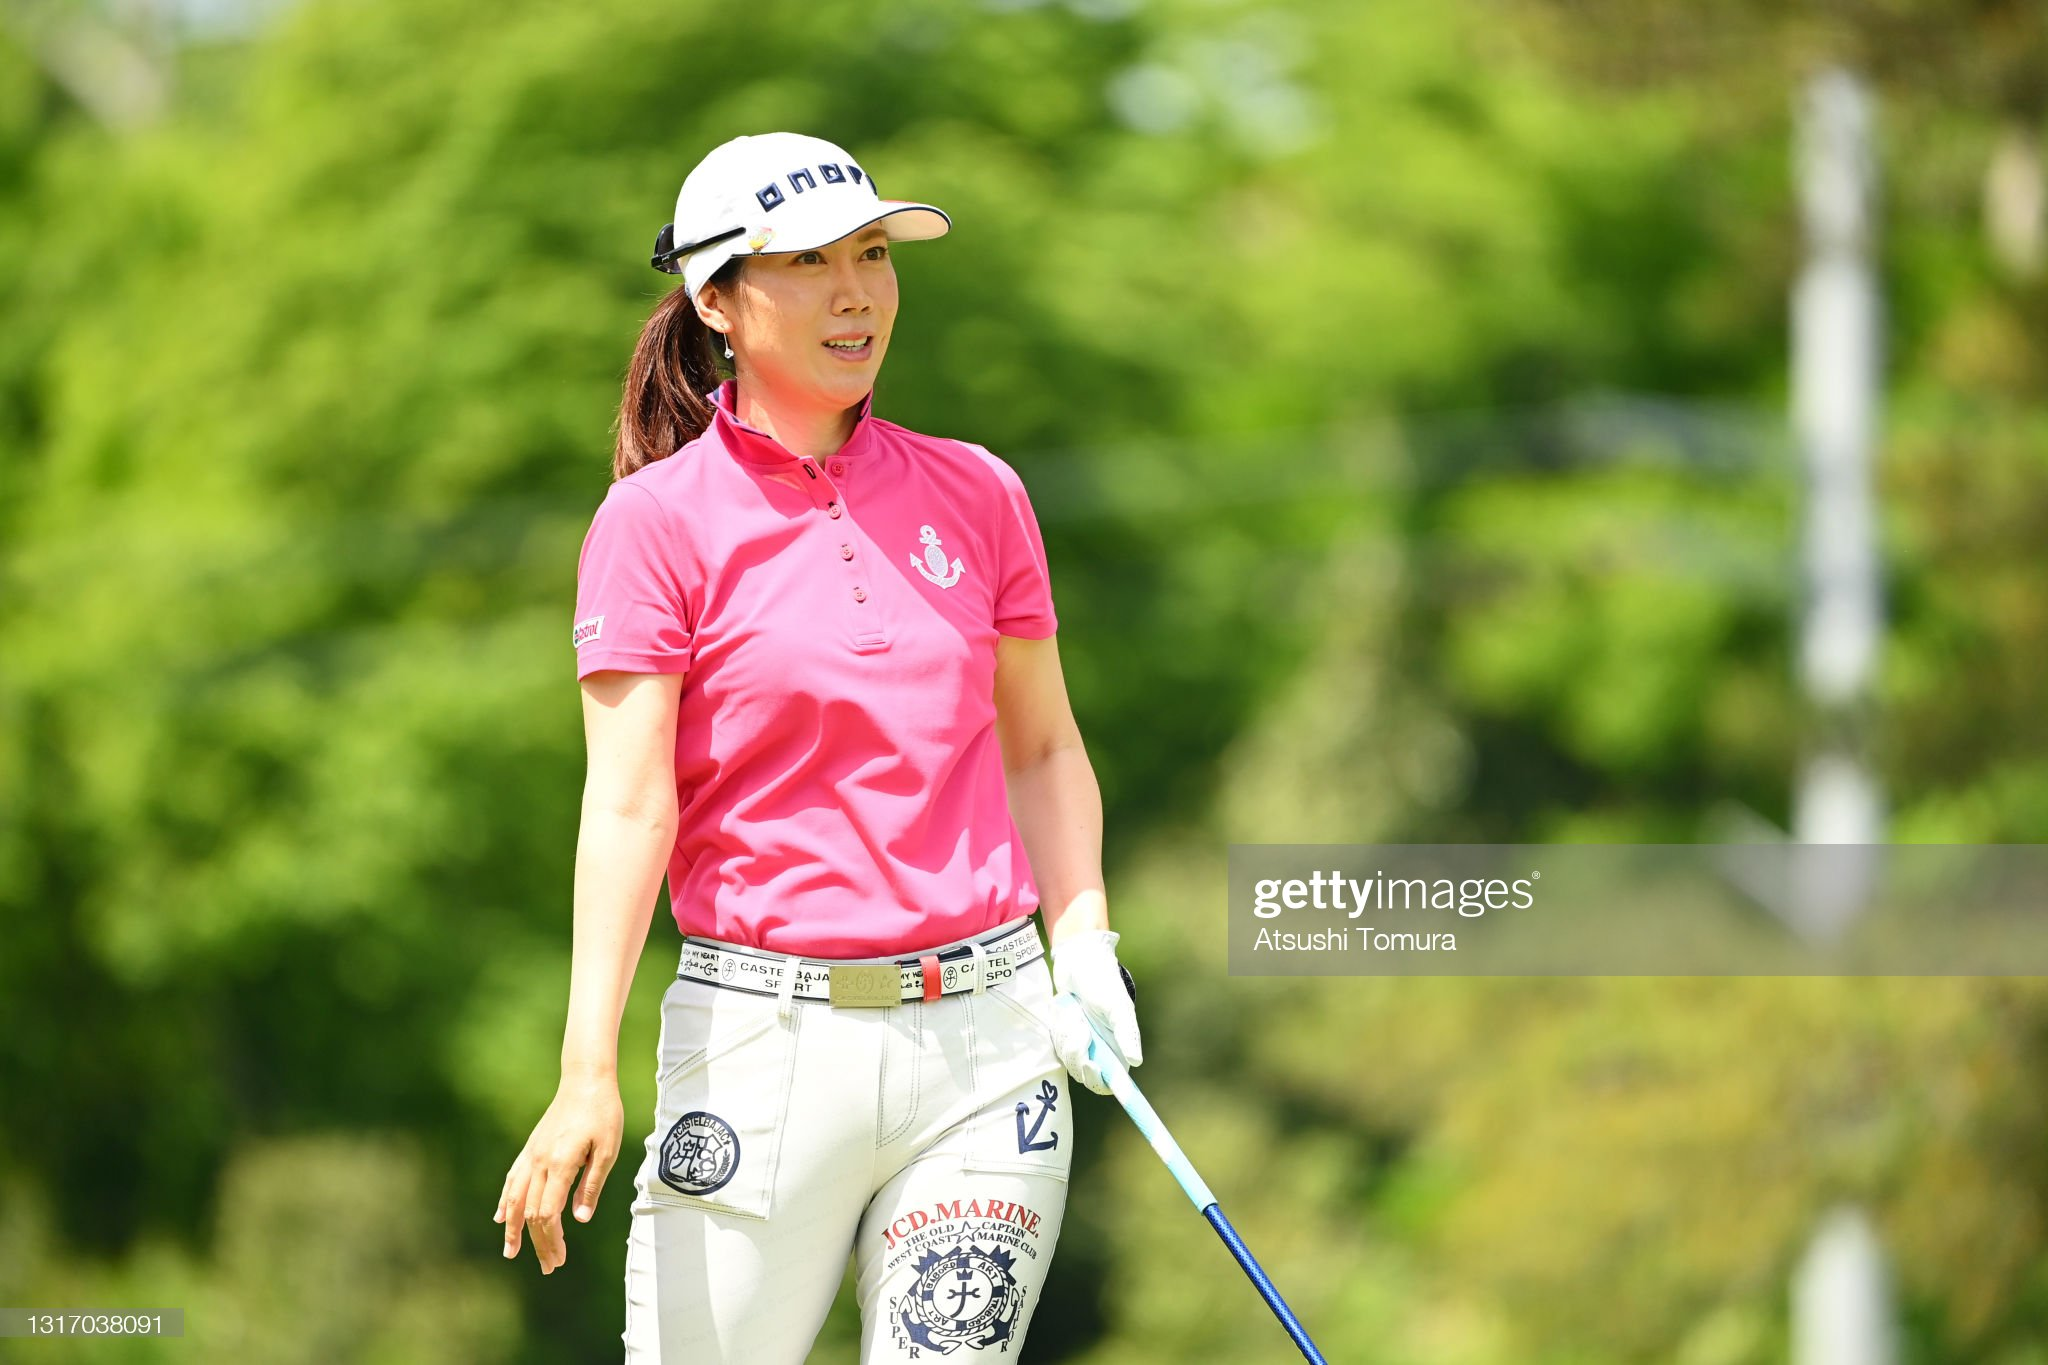 https://media.gettyimages.com/photos/jihee-lee-of-south-korea-reacts-after-her-tee-shot-on-the-3rd-hole-picture-id1317038091?s=2048x2048